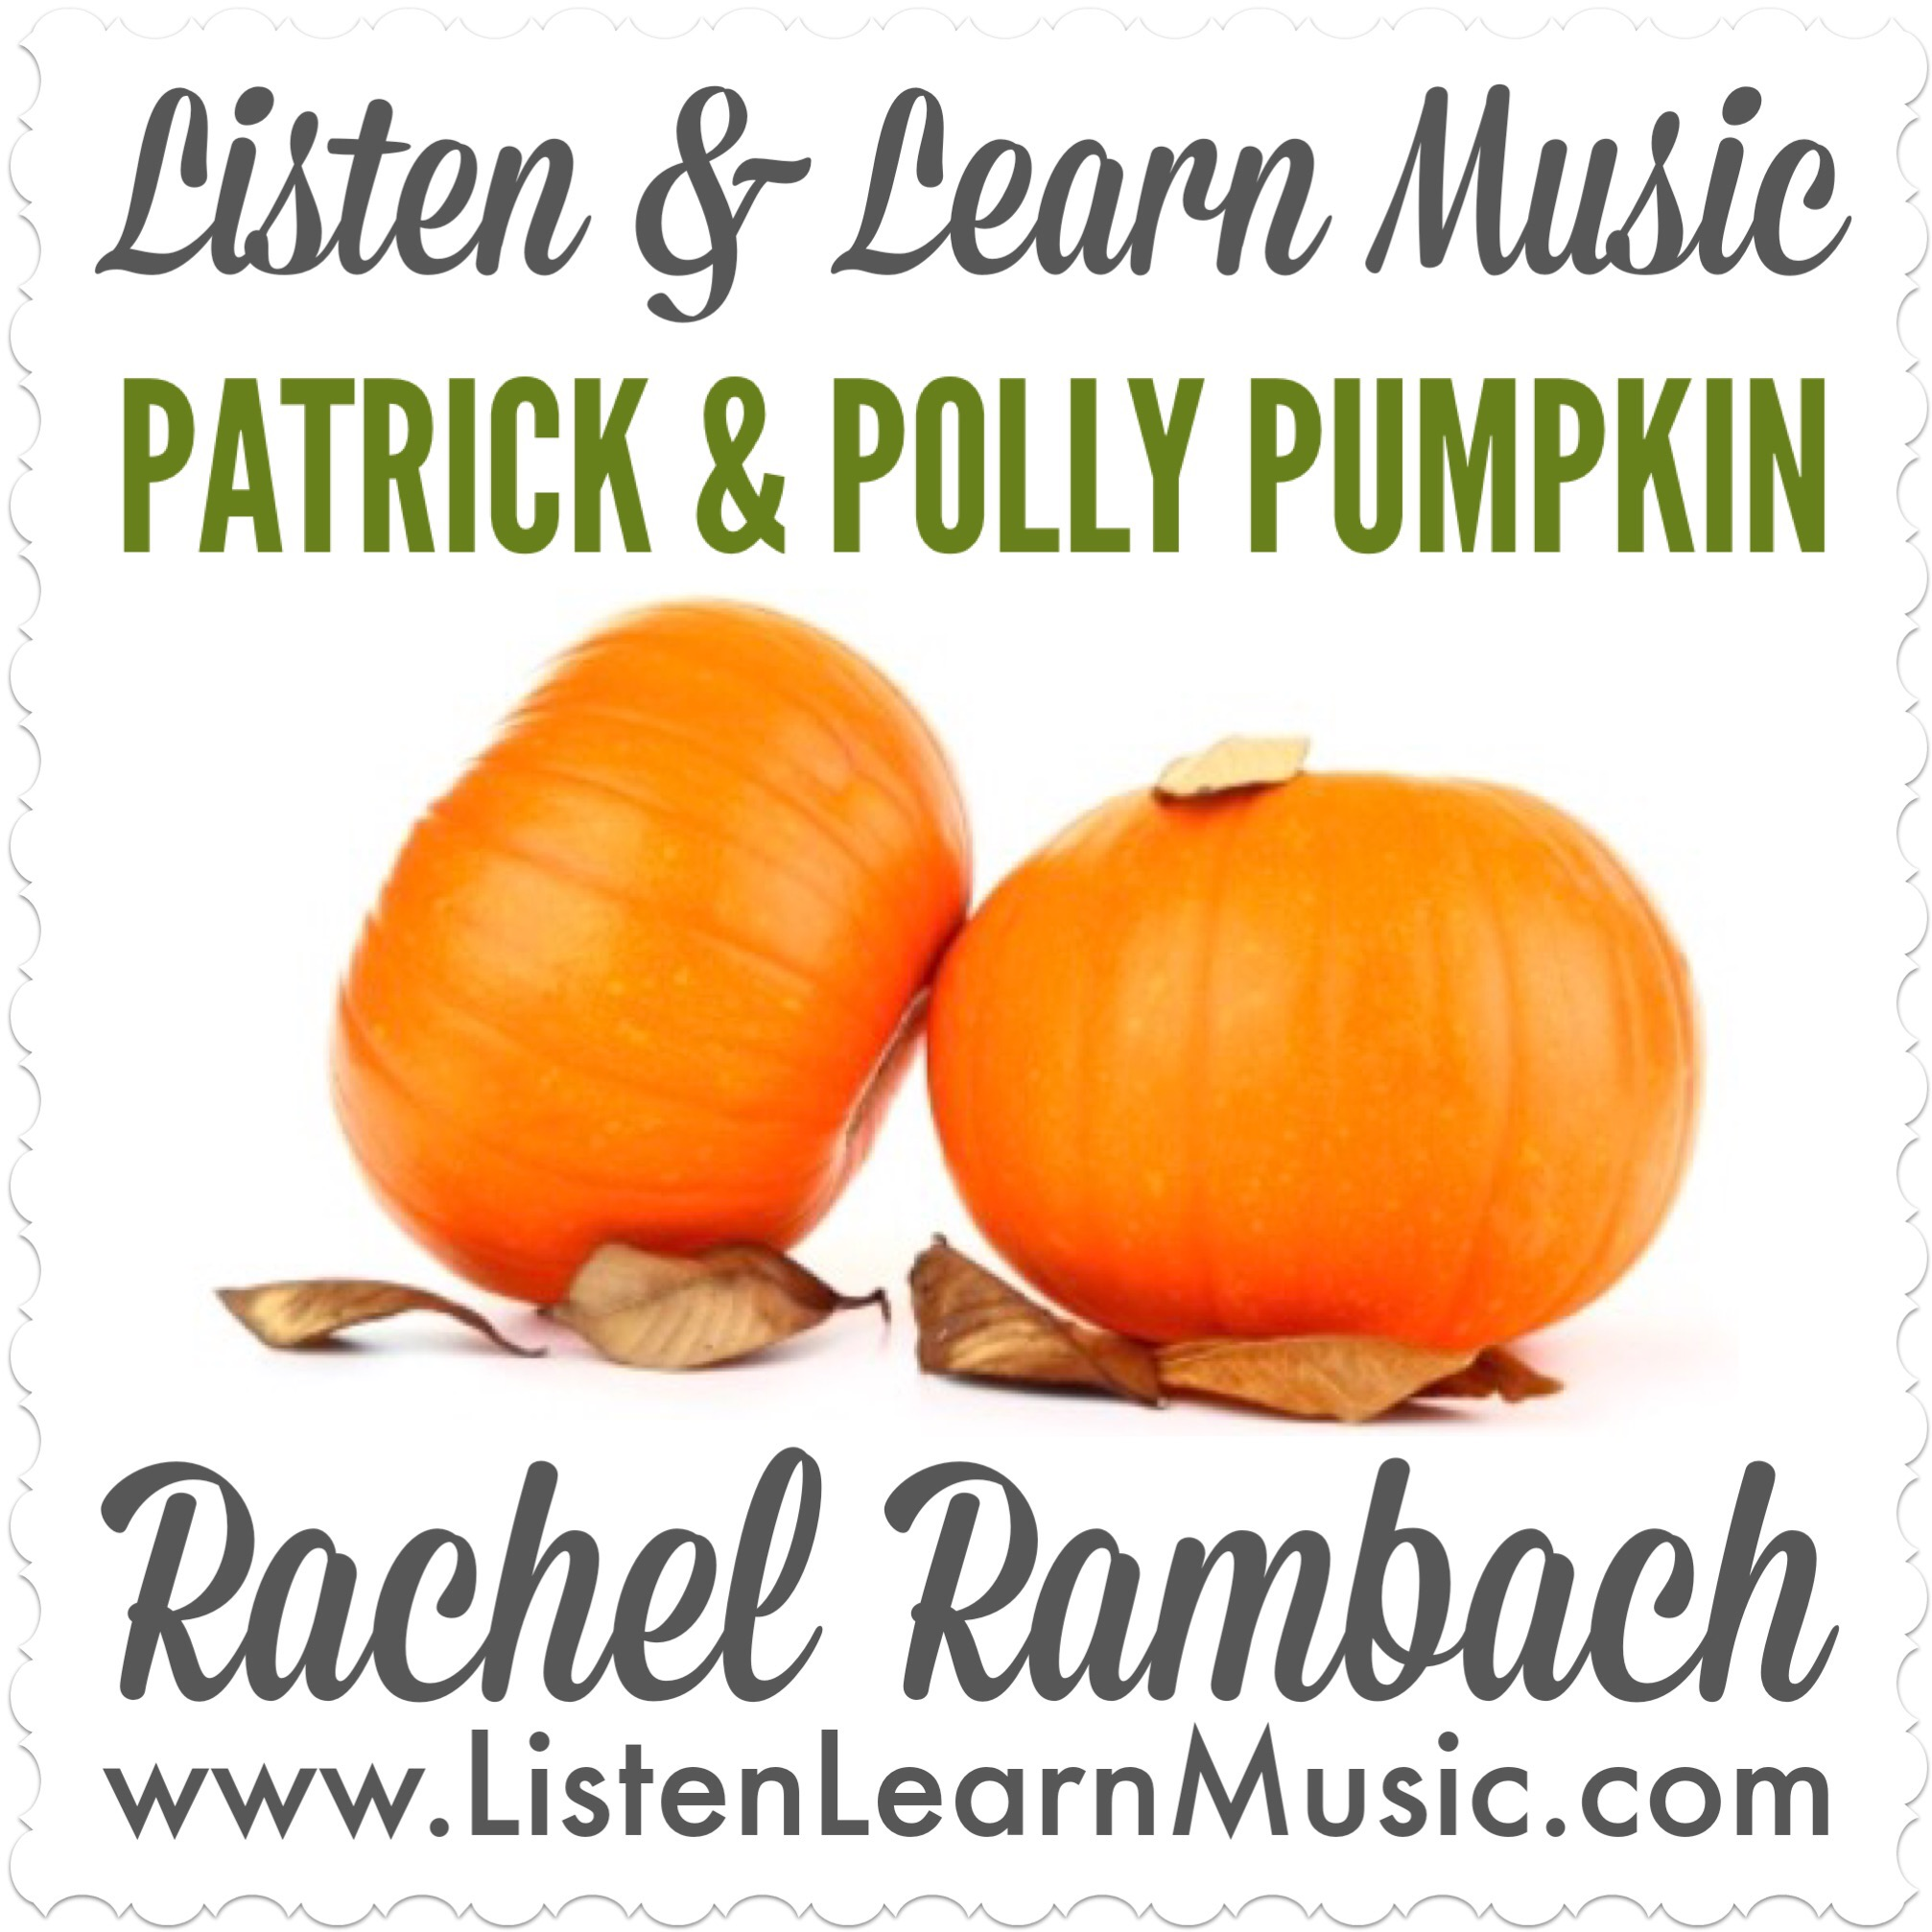 Patrick & Polly Pumpkin Album Cover